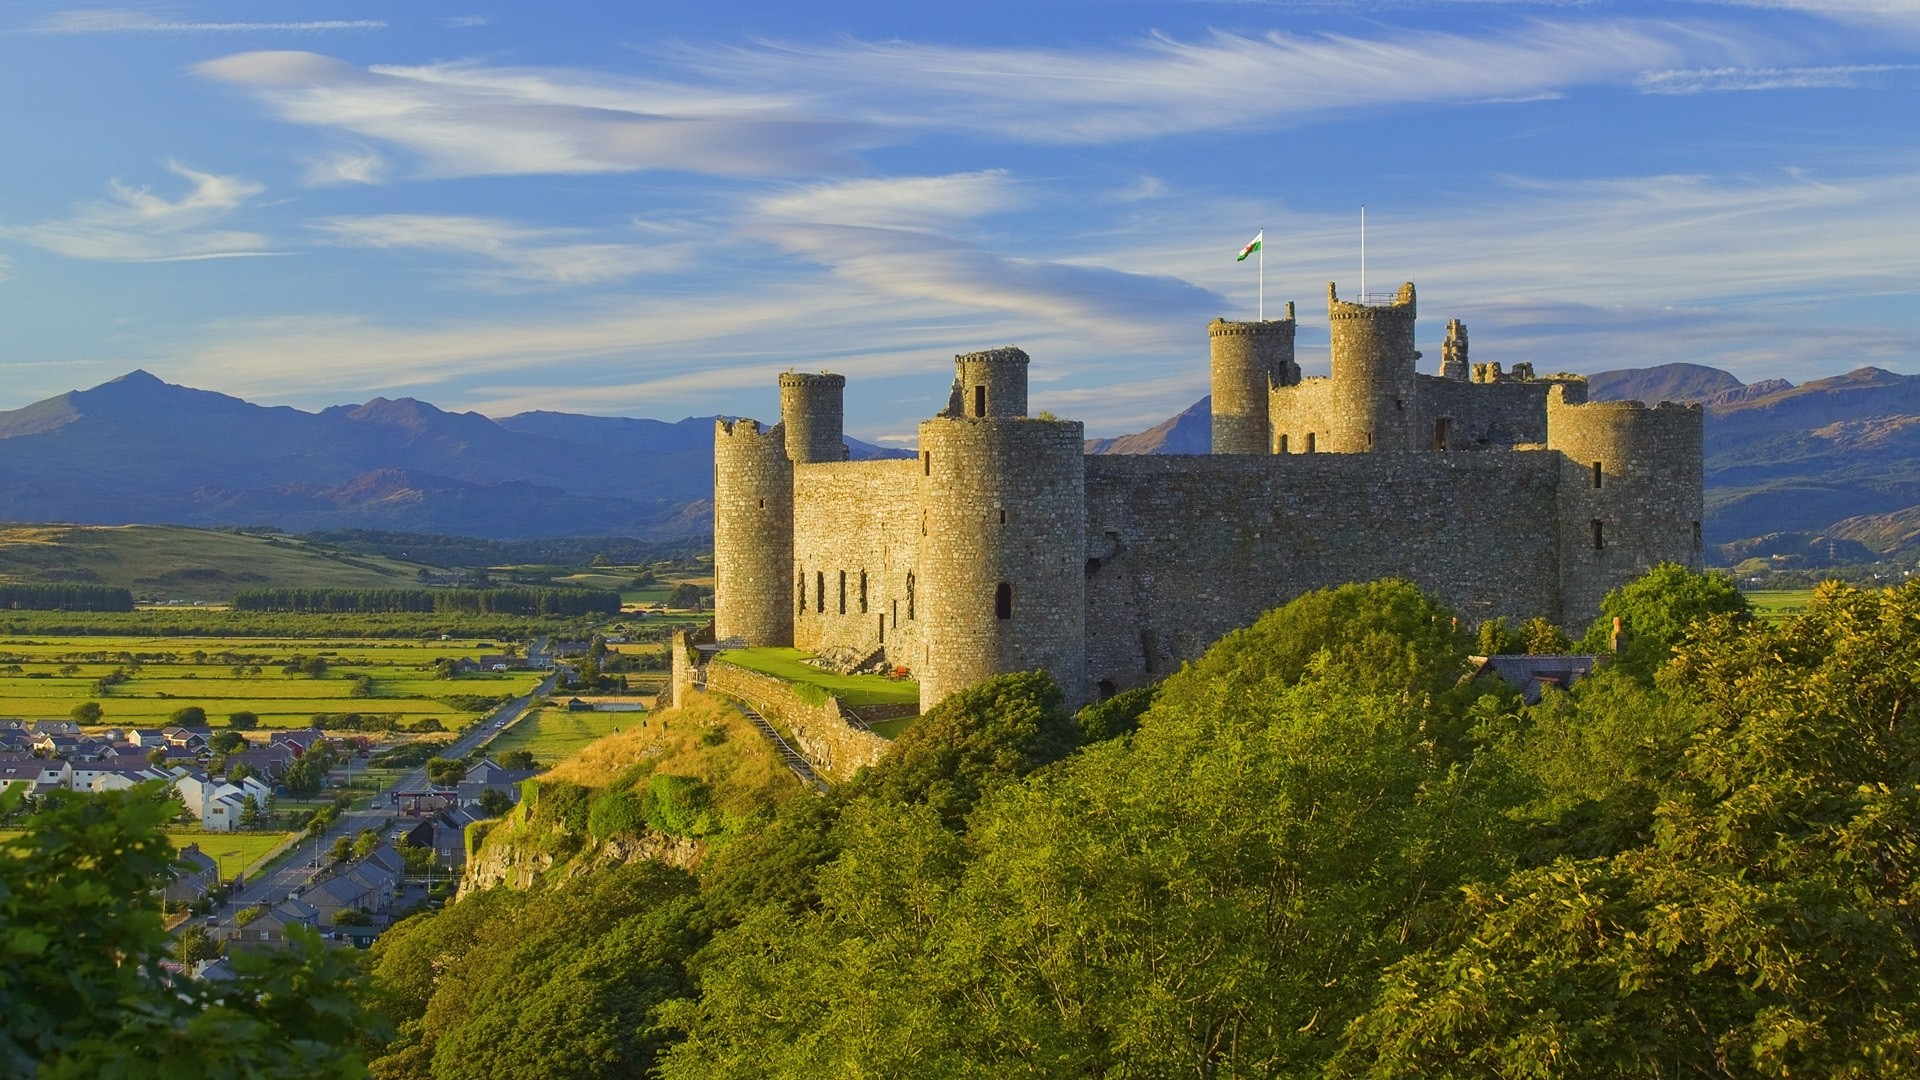 beautiful-ancient-castle-on-a-hill-305189